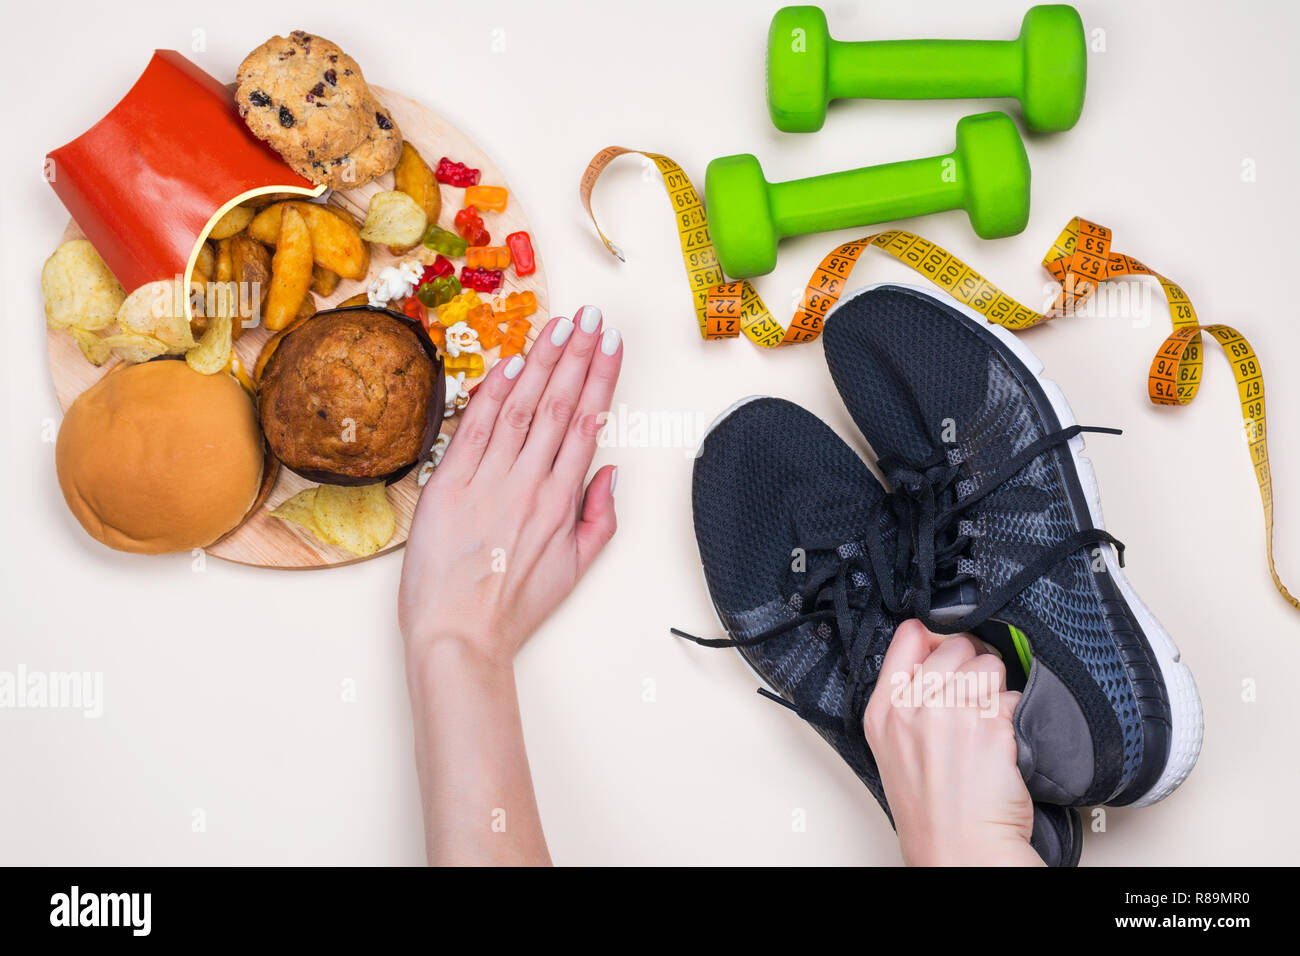 Junk food and sport accessories - Stock Image